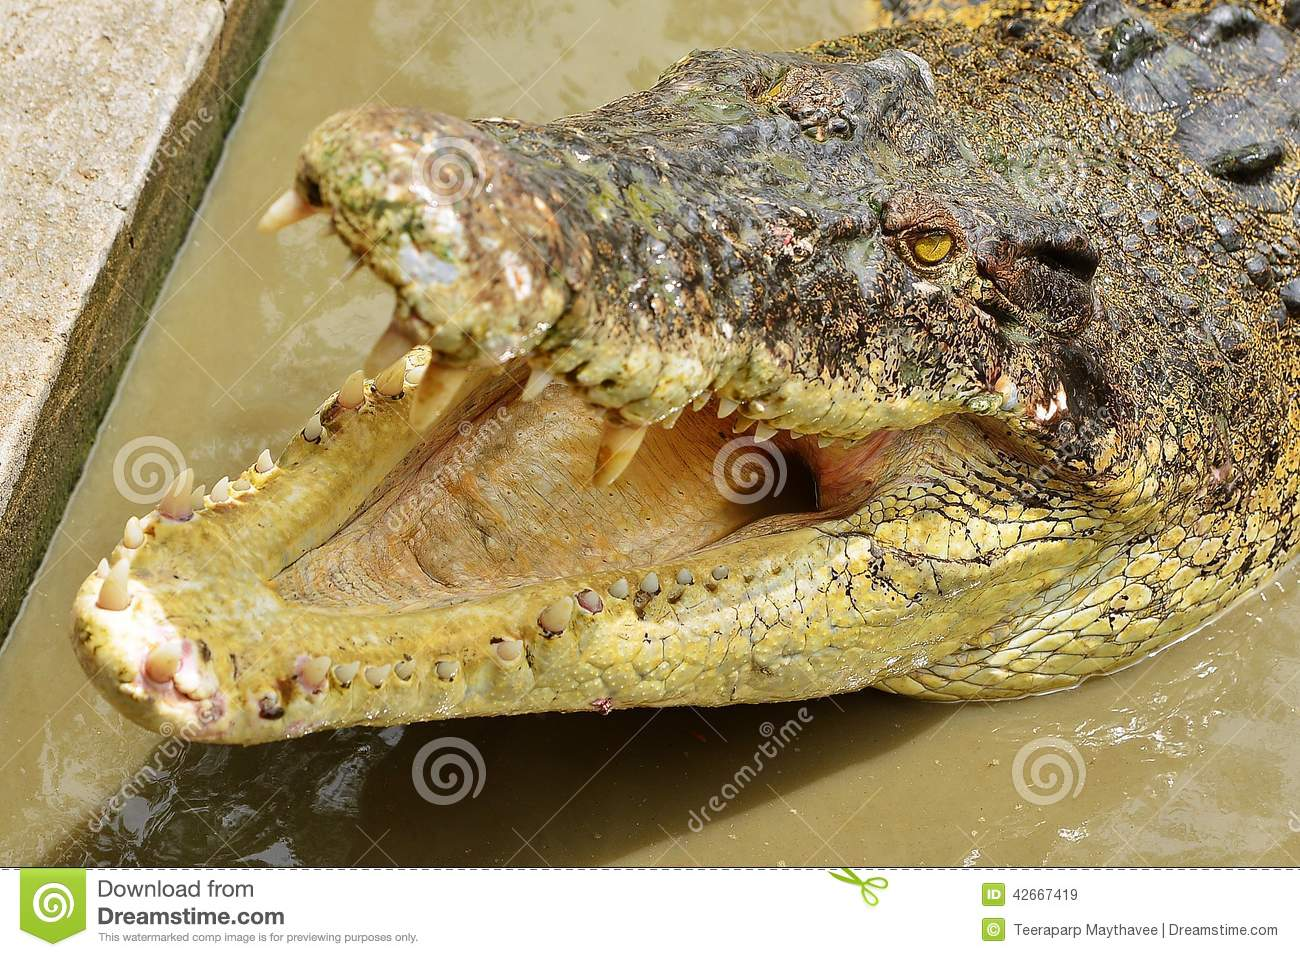 Crocodile Stock Photo - Image: 42667419